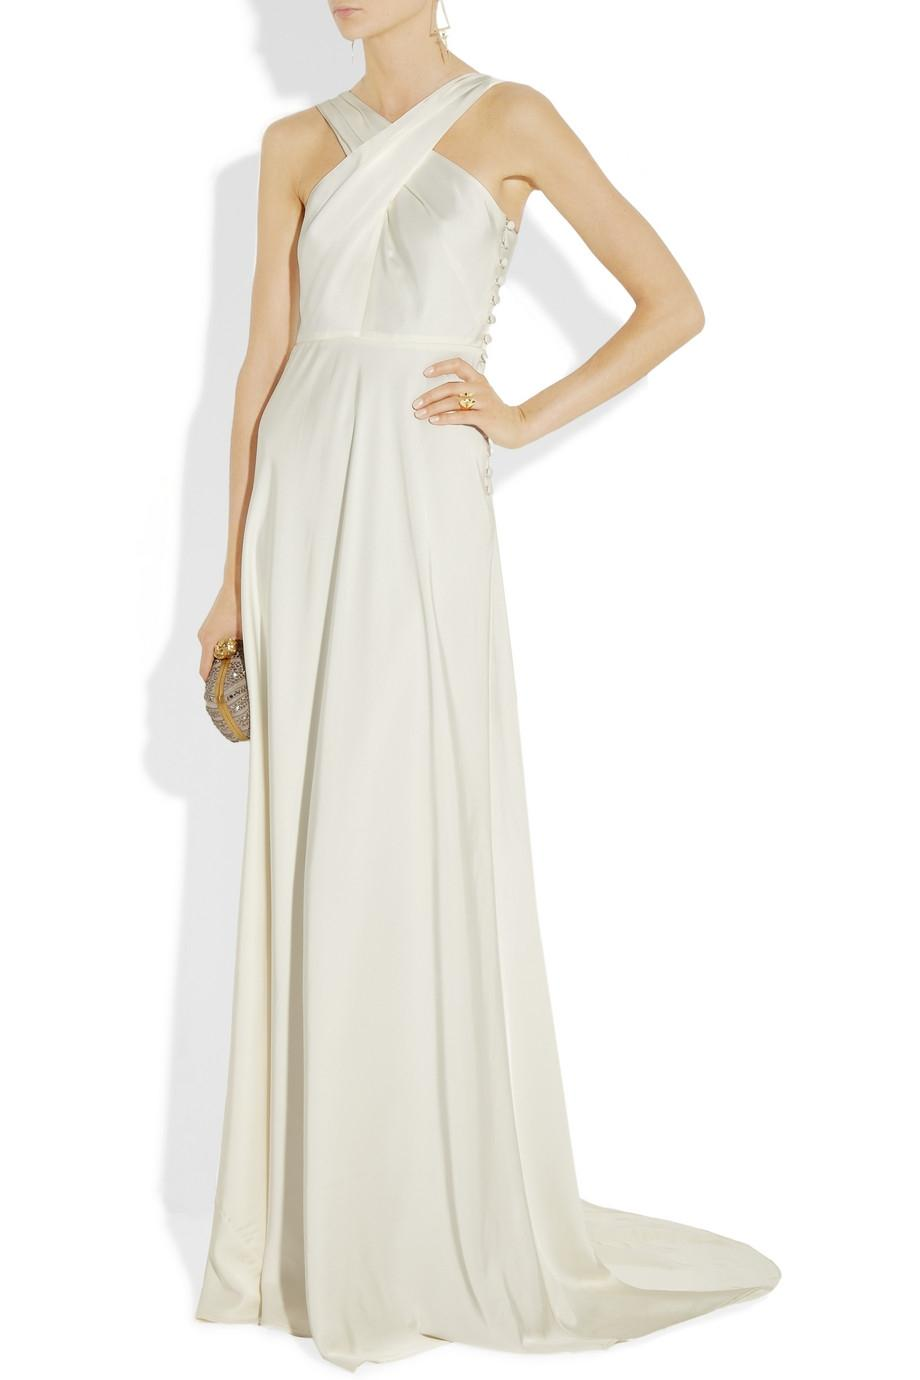 Stunning Used Wedding Dresses Buy U Sell Your Dress Tradesy With Old